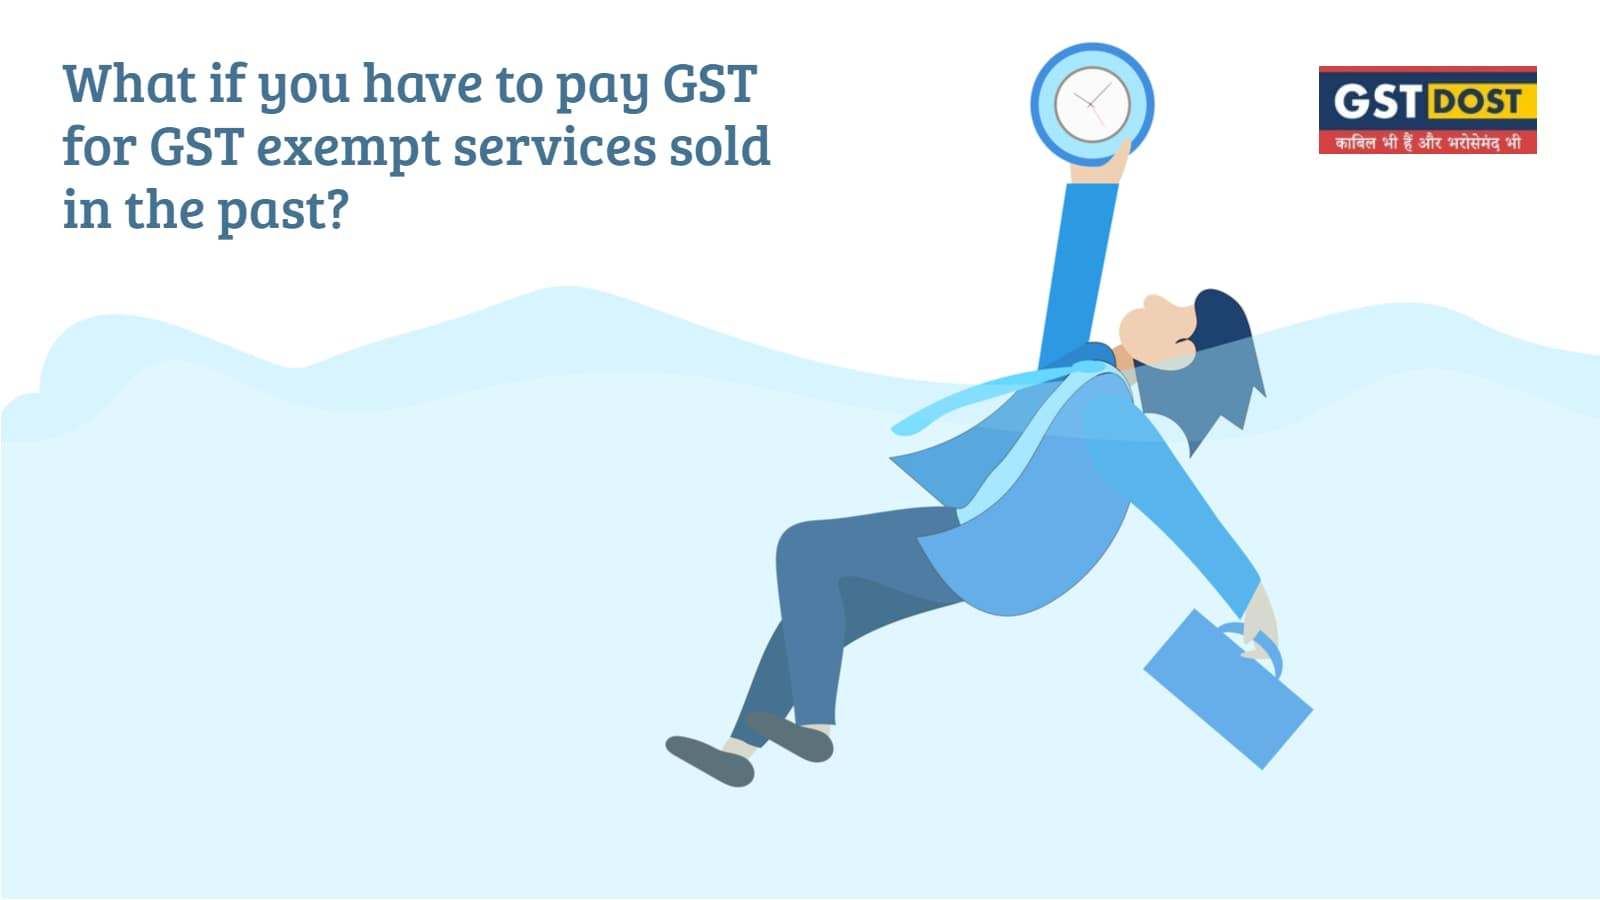 What if you have to pay GST for GST-exempt services sold in the past?